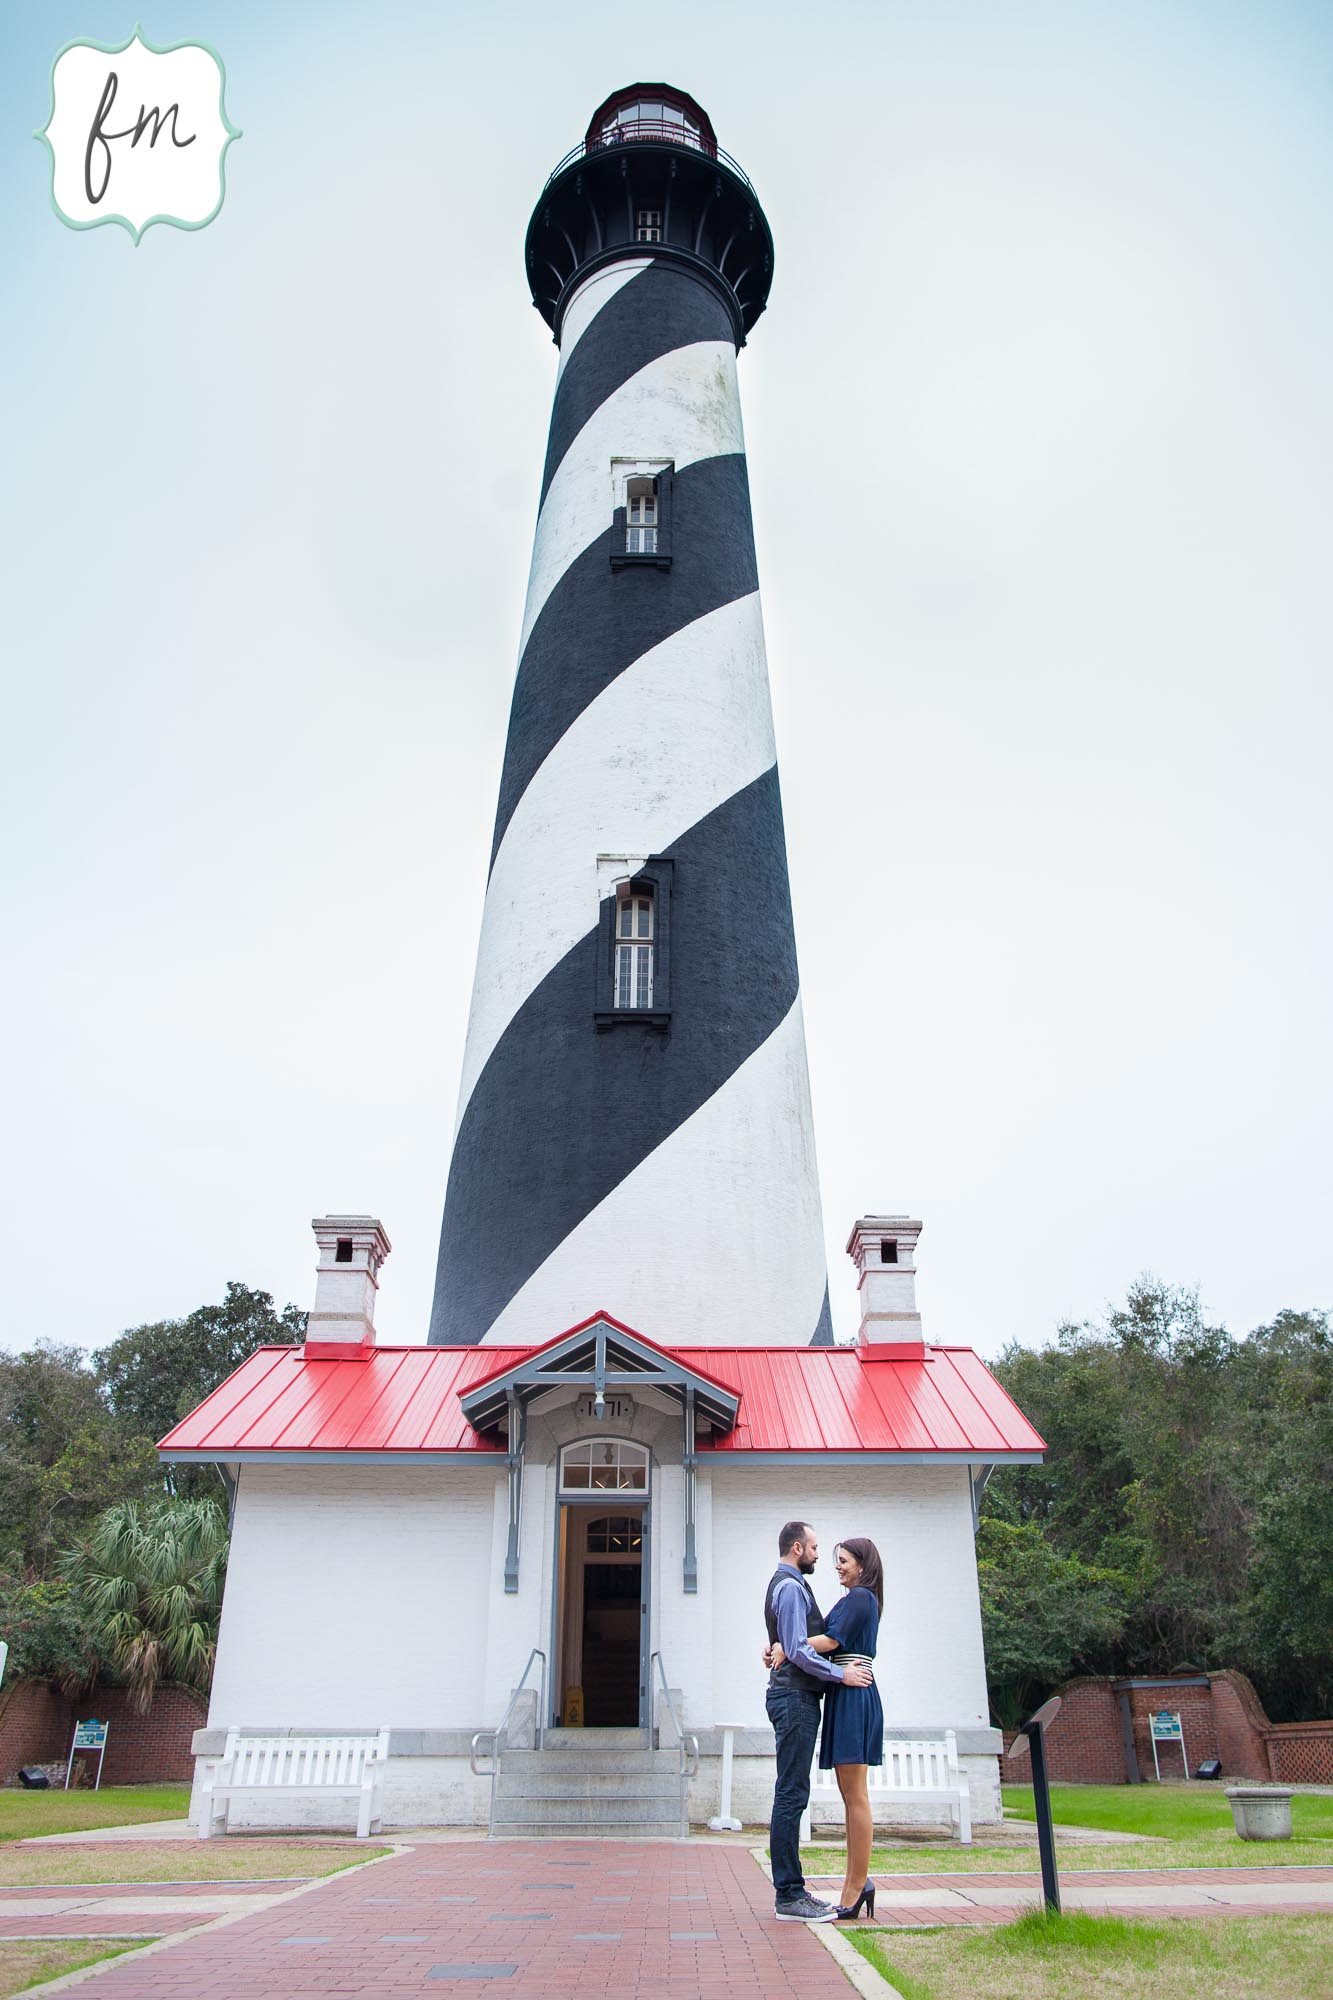 2014_02_08_St_Augustine_Lighthouse_Engagement_Photography_01.jpg